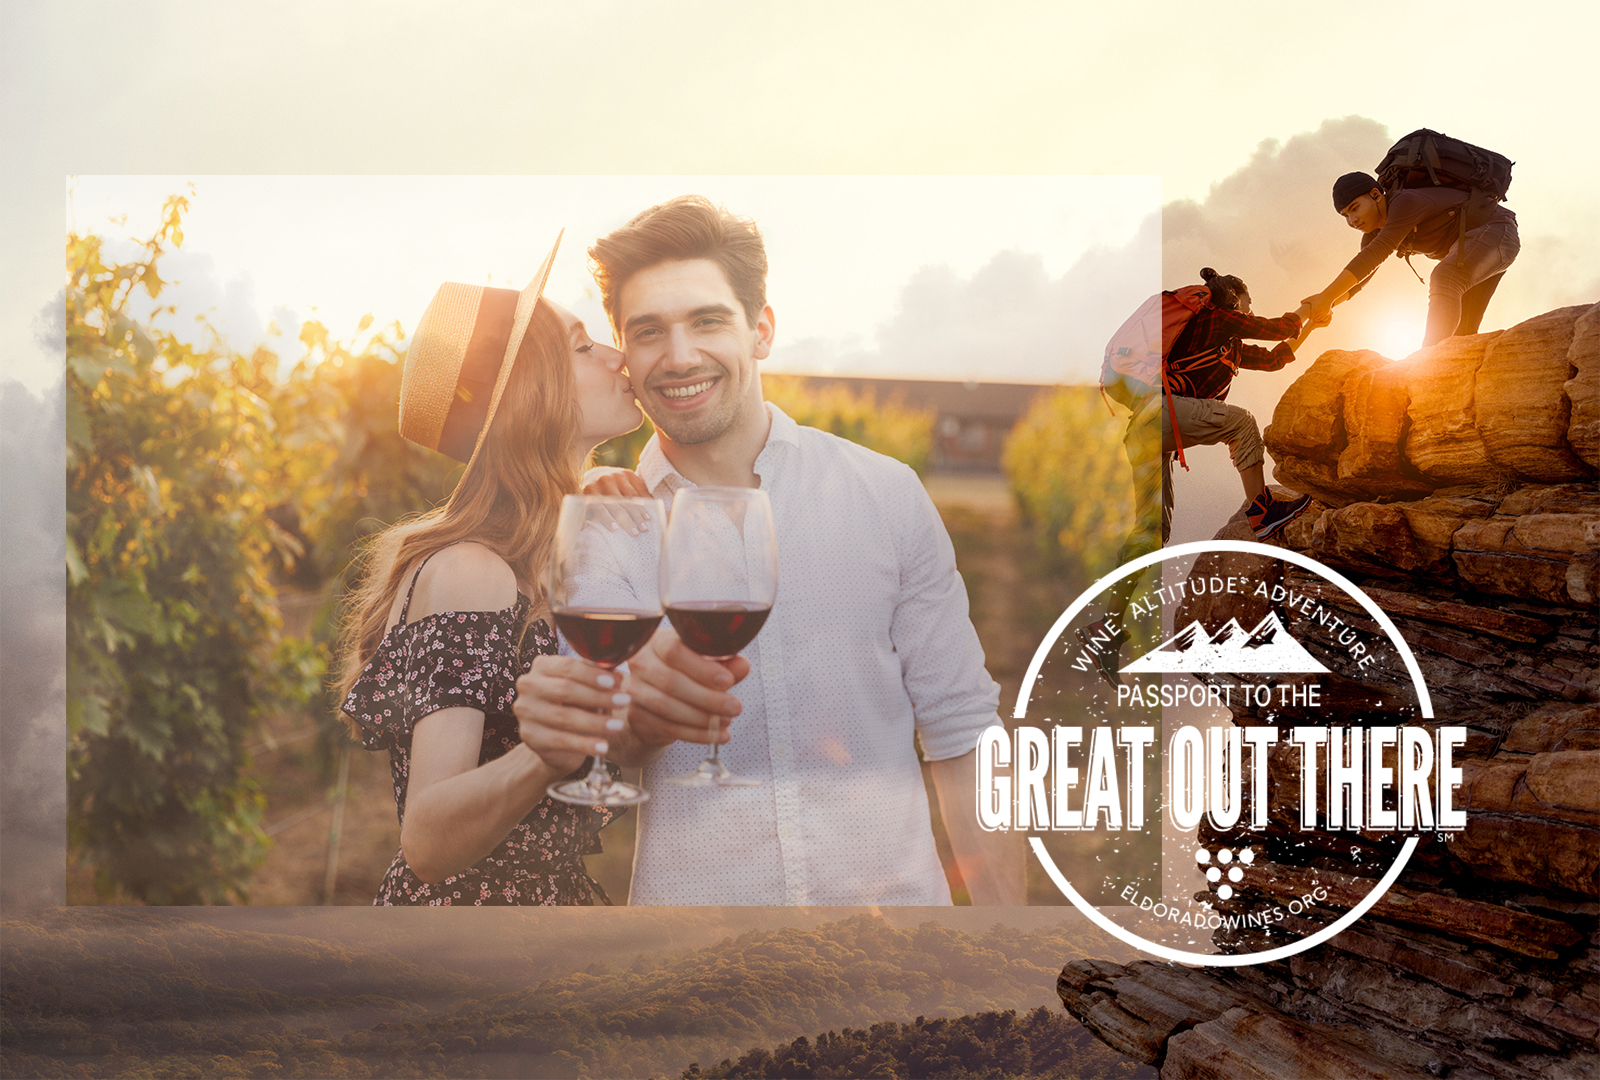 A couple holding a glass of red wine and in the background another couple climbing a big rock